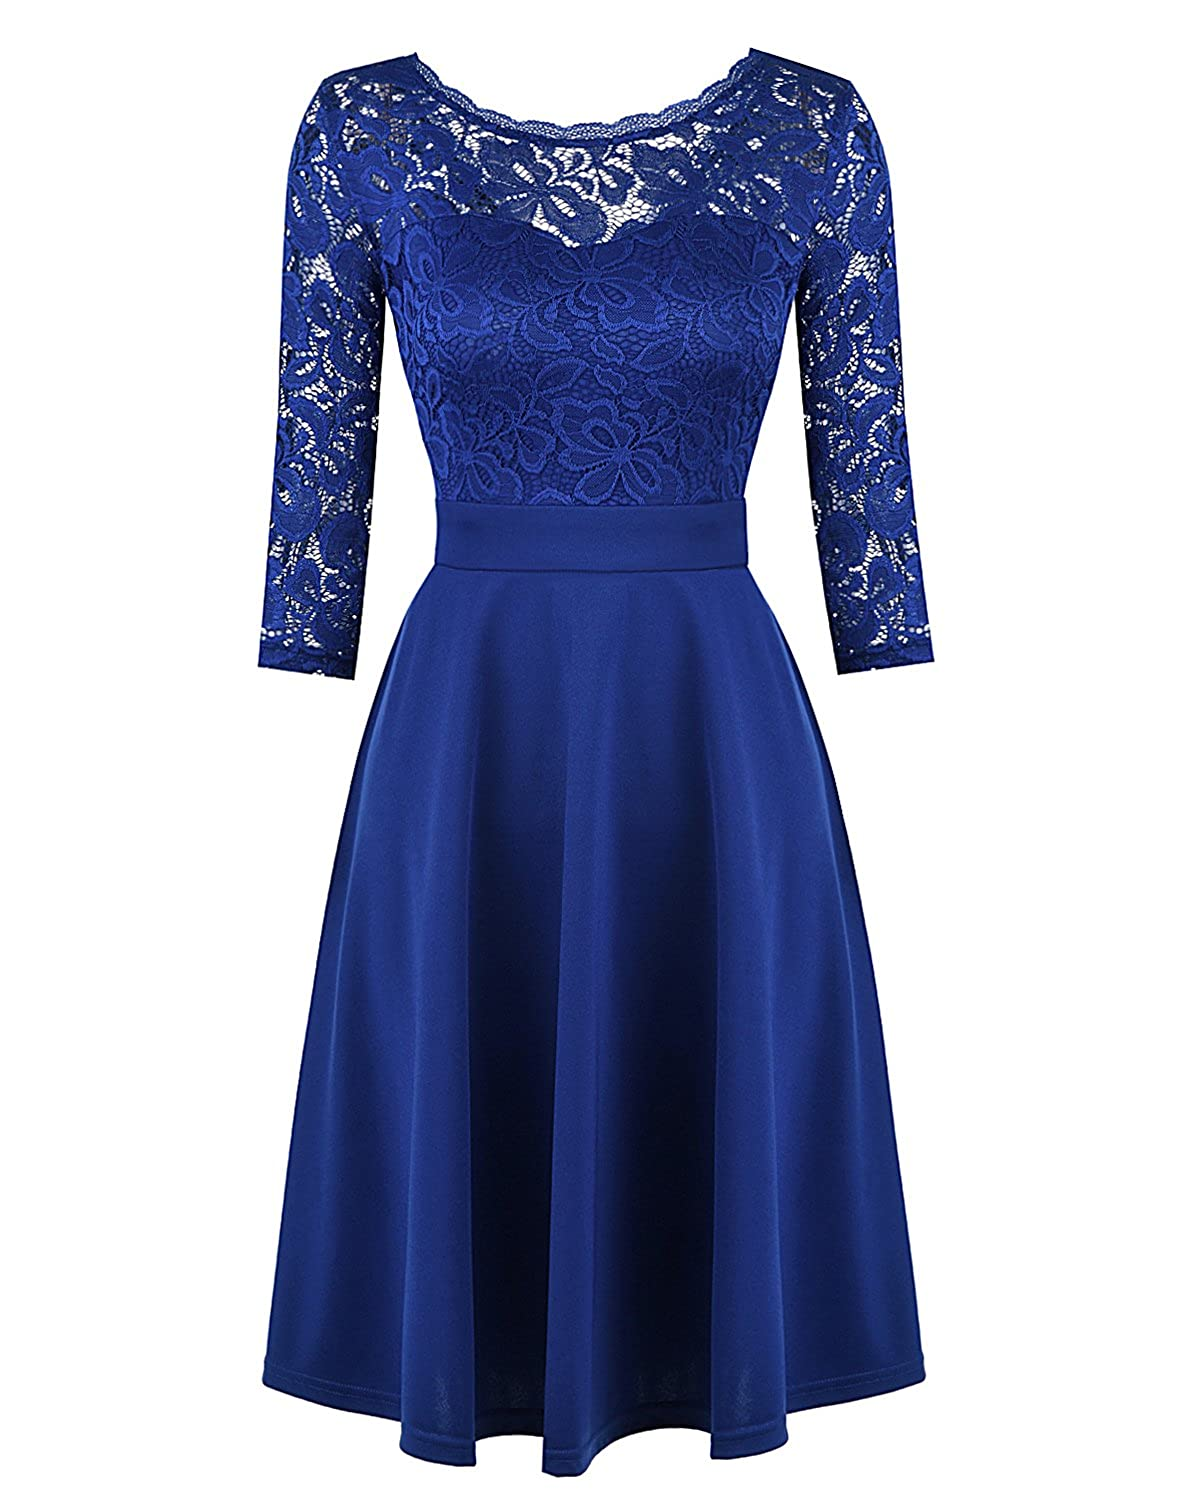 42bfd52c24f6 Top1: Mixfeer Women's Vintage Floral Lace Cocktail Party Swing Dress 3/4  Sleeves